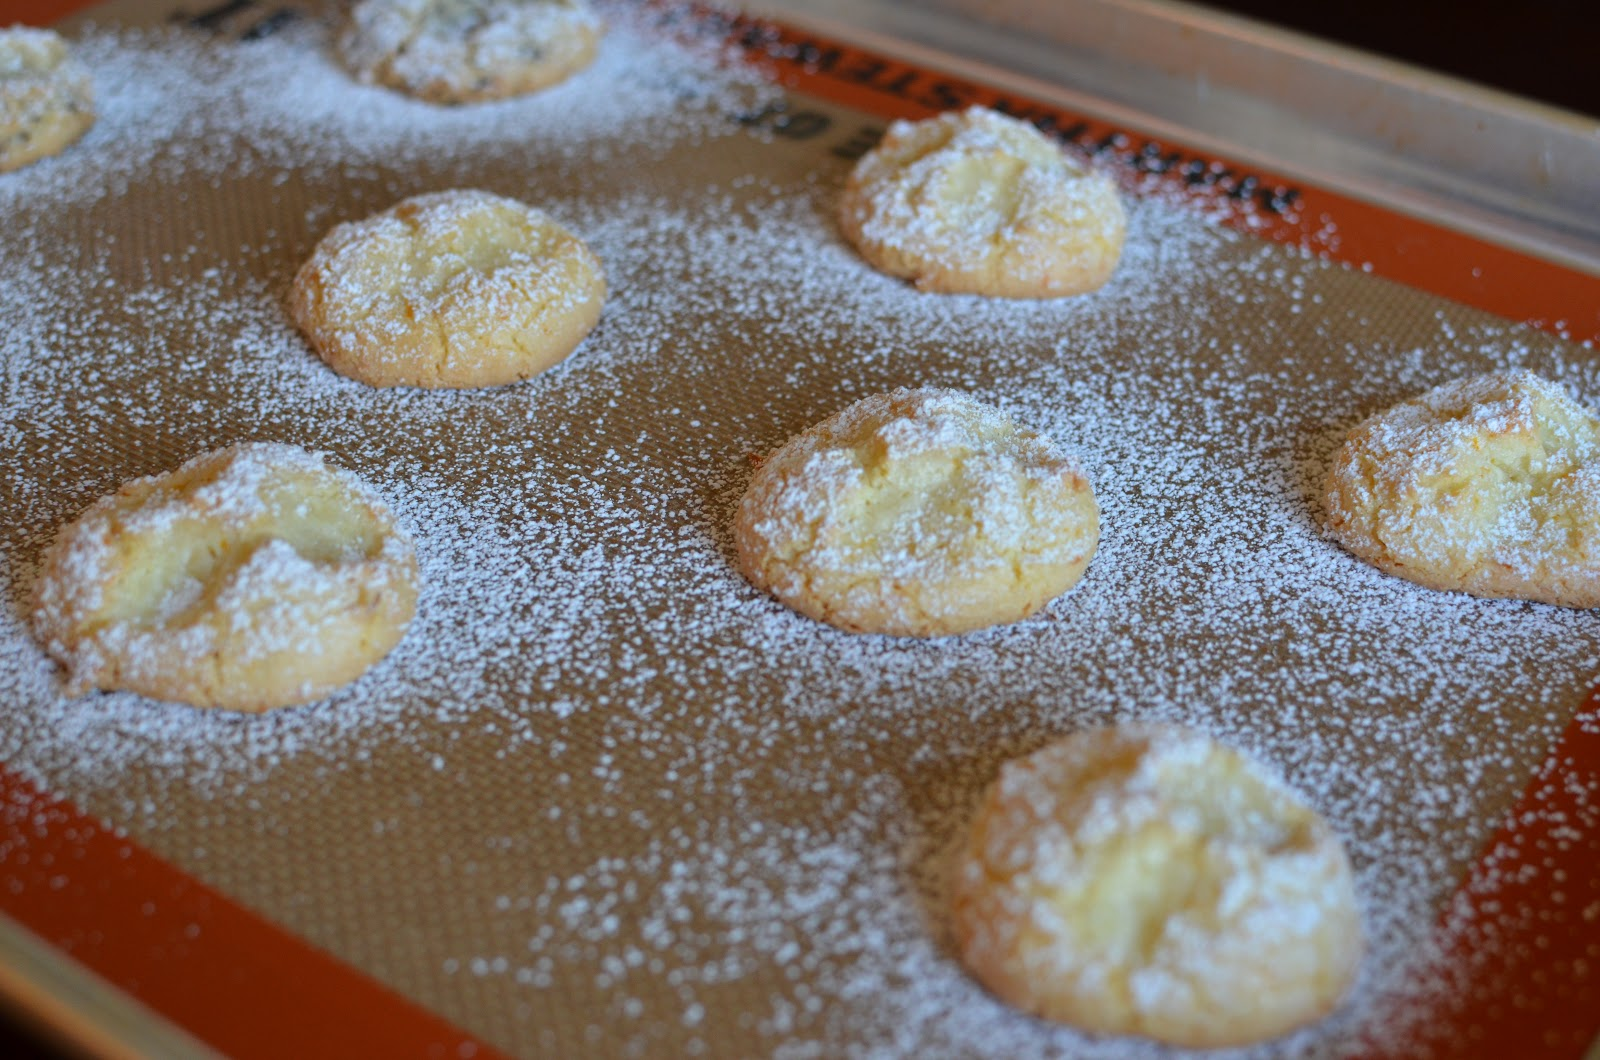 Playing with Flour: Another reason to break out the almond paste